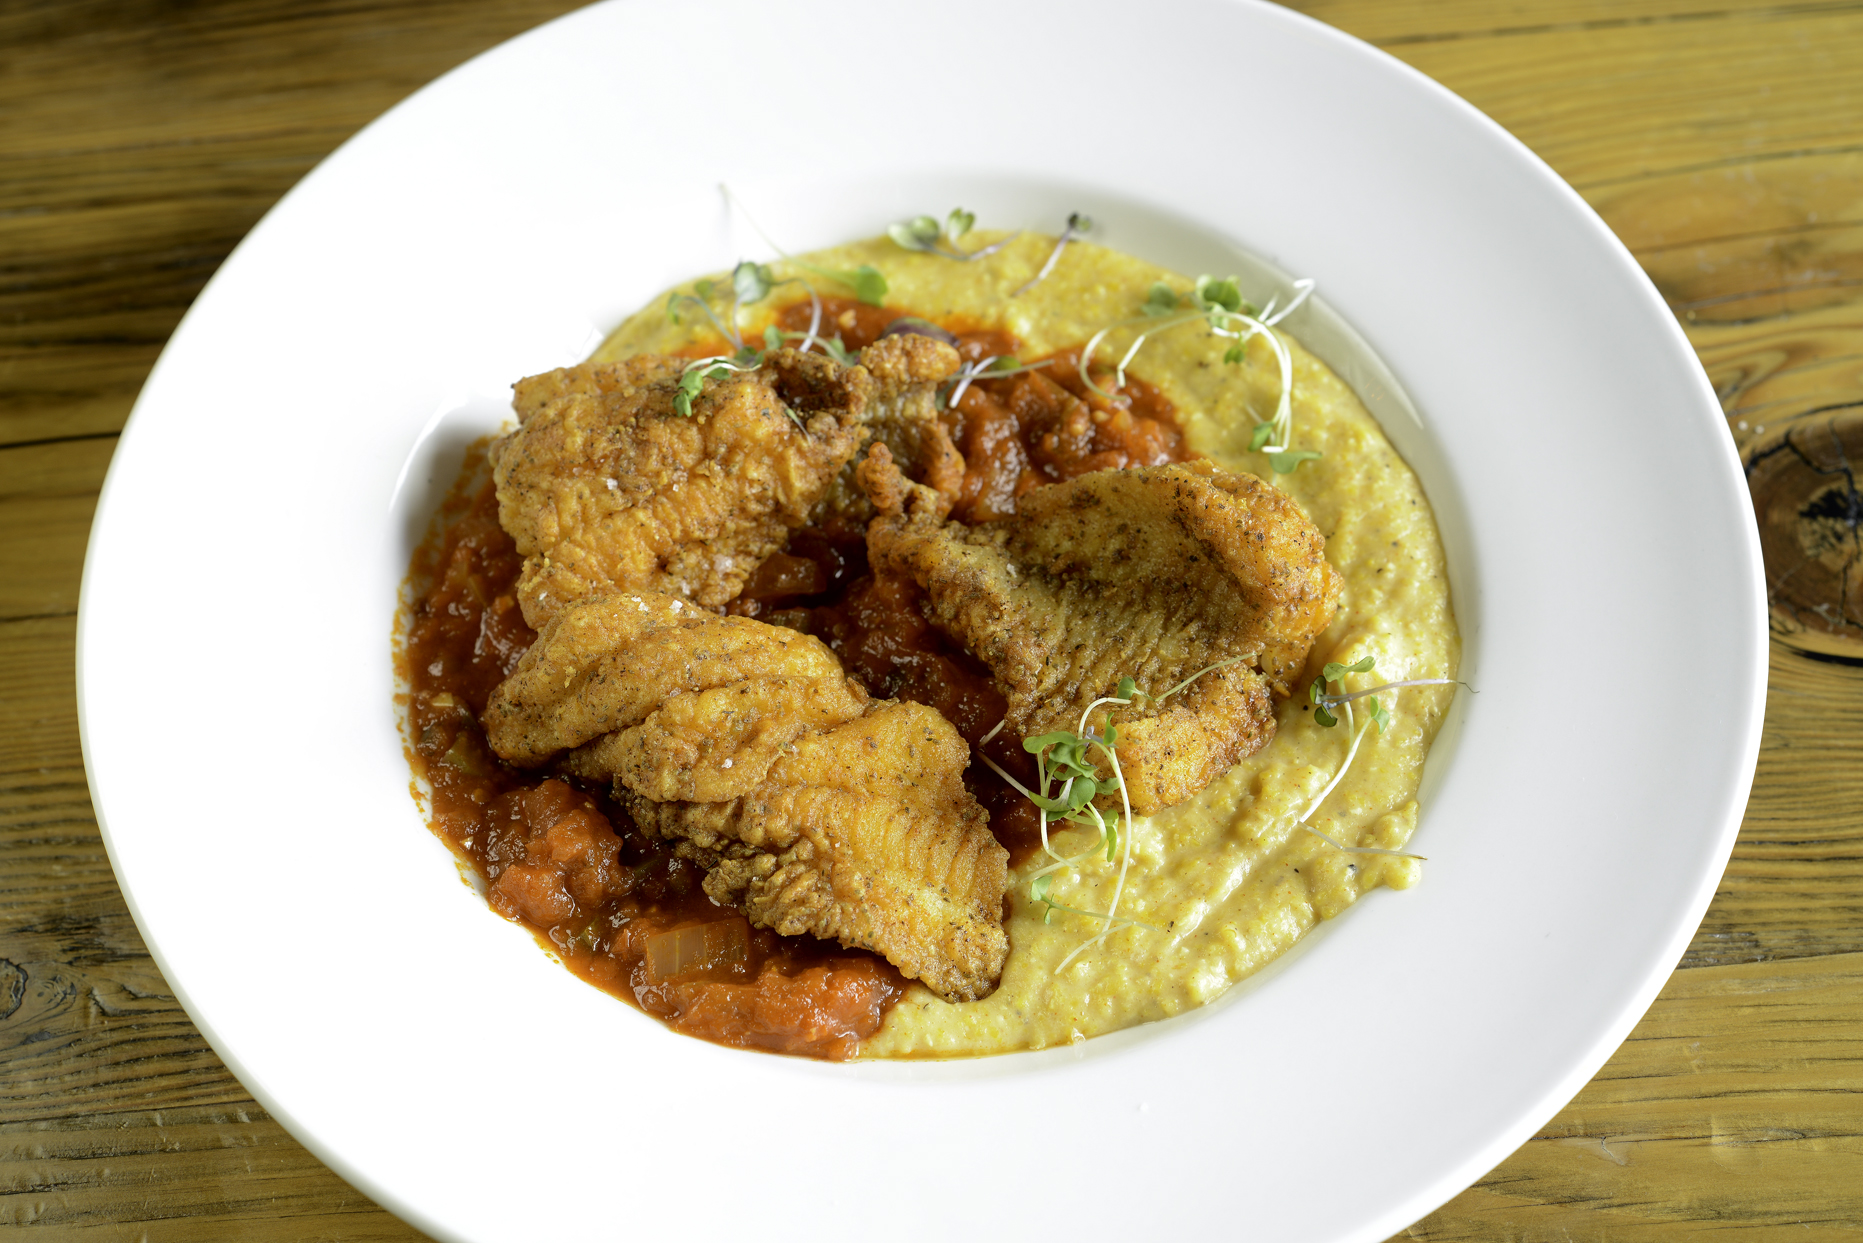 Hutch_FishAndGrits.jpg